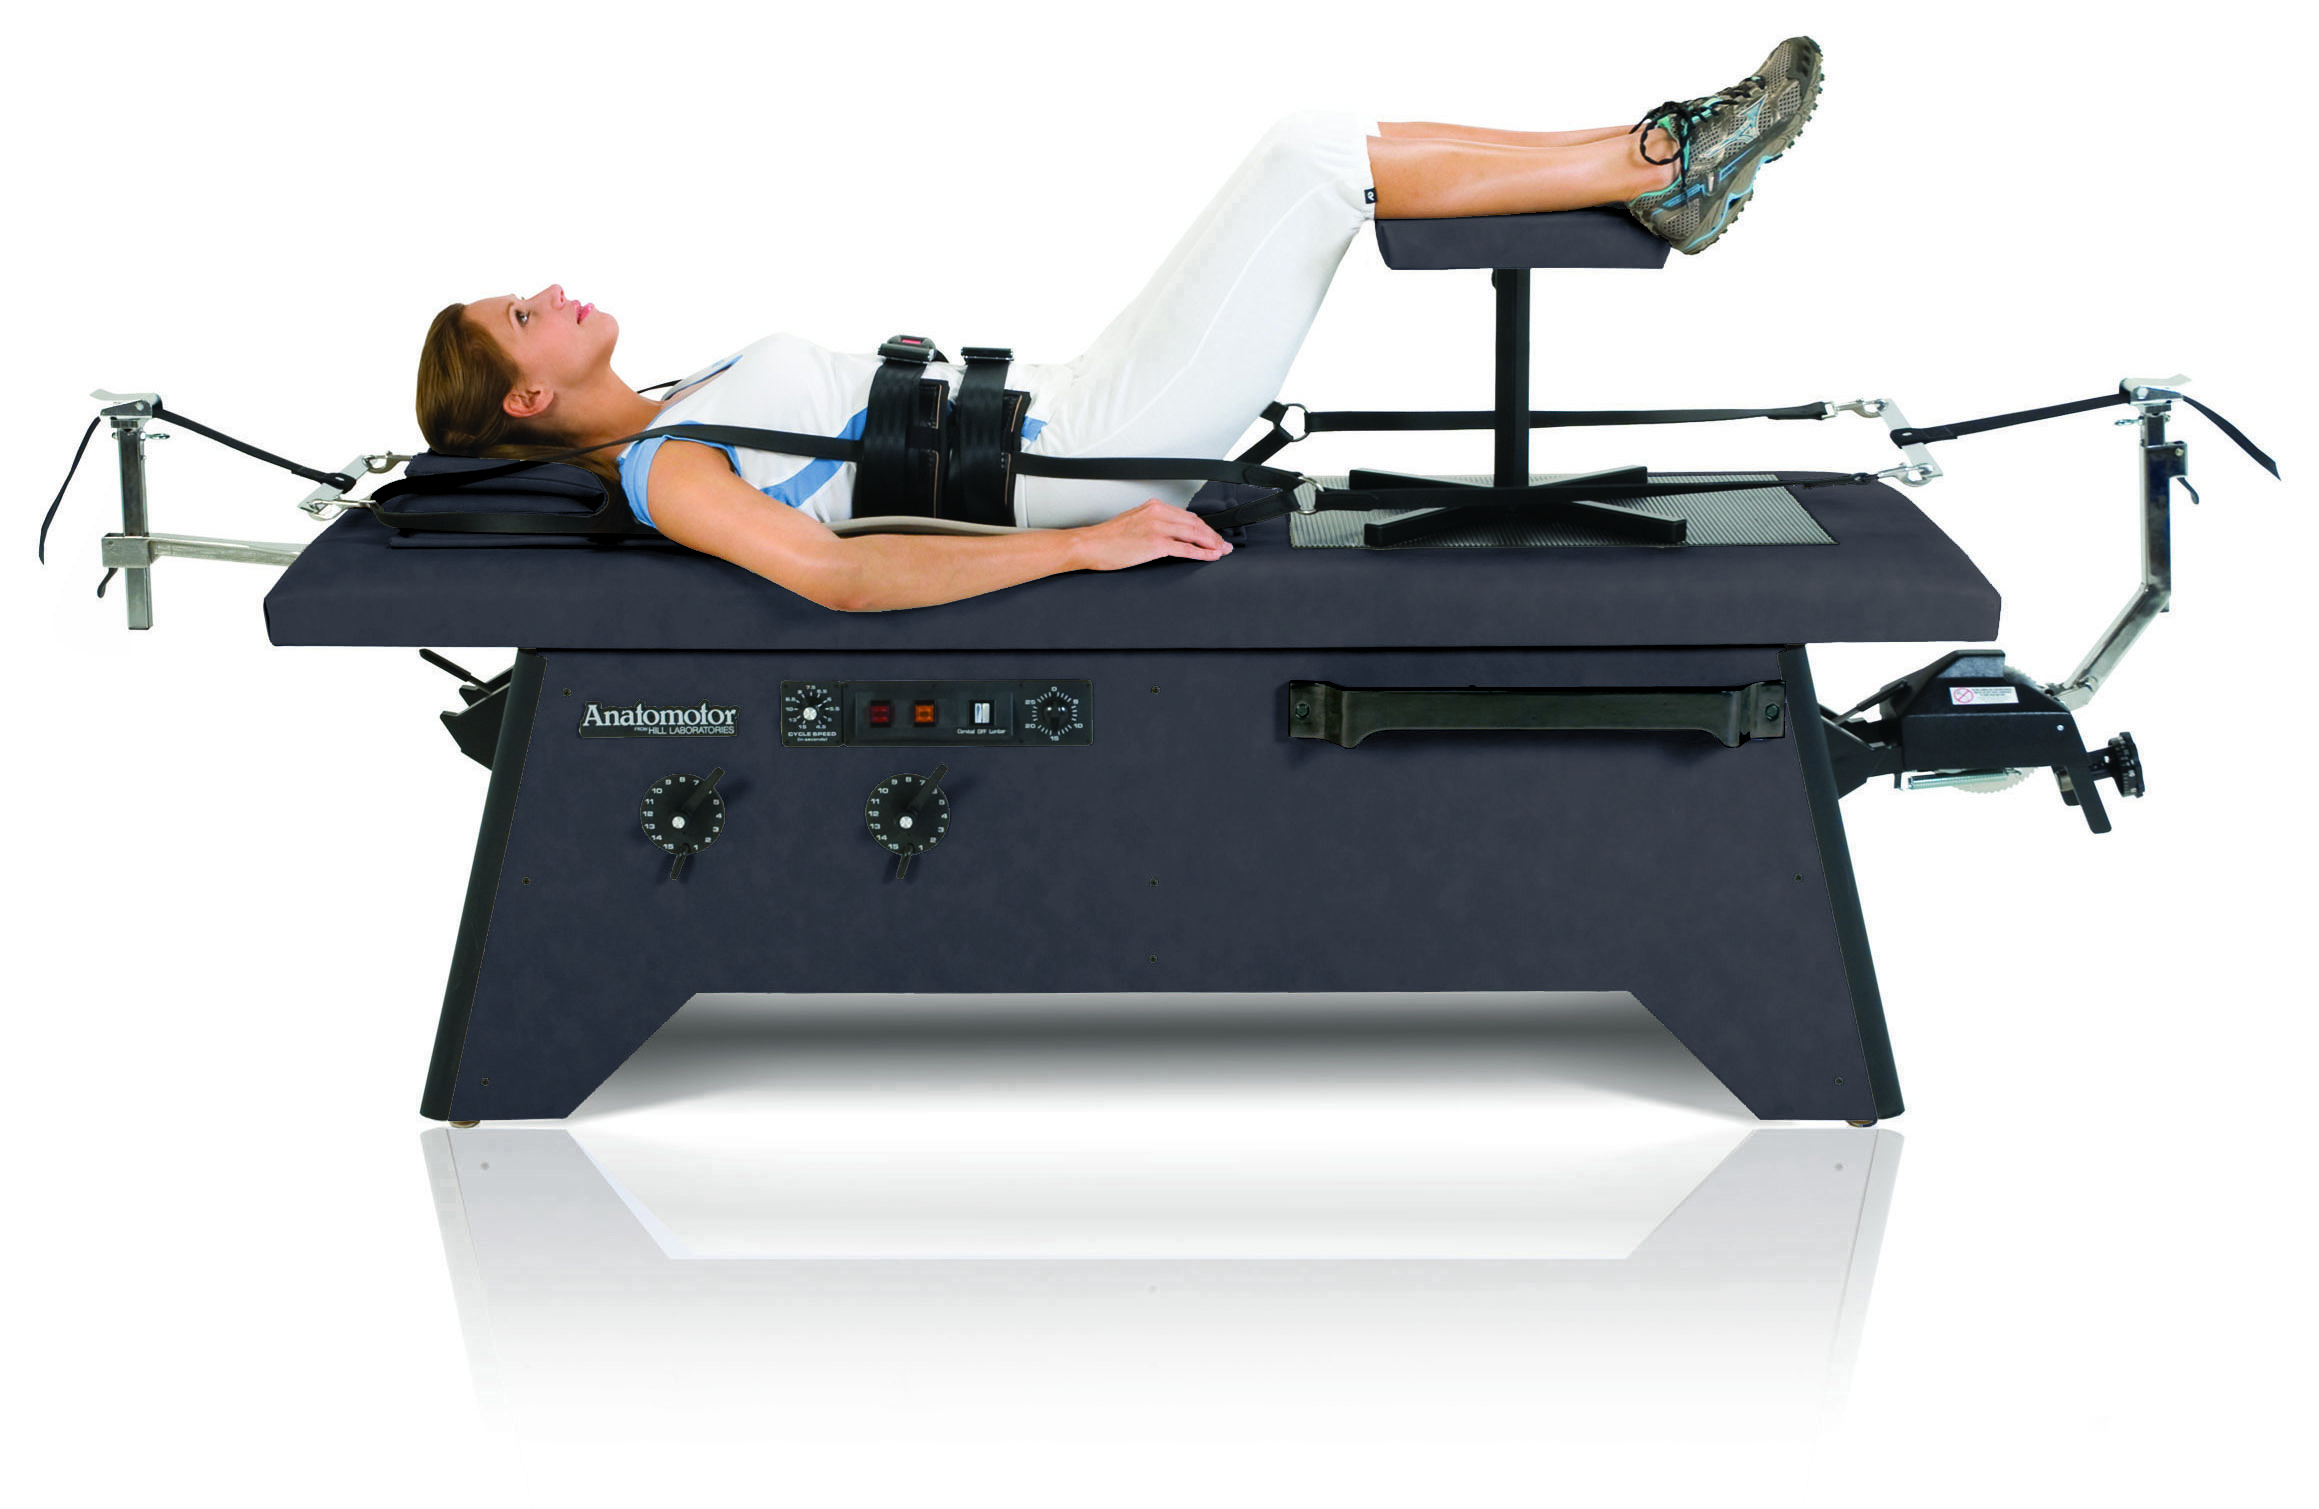 Benefits of a chiropractic roller table for your practice